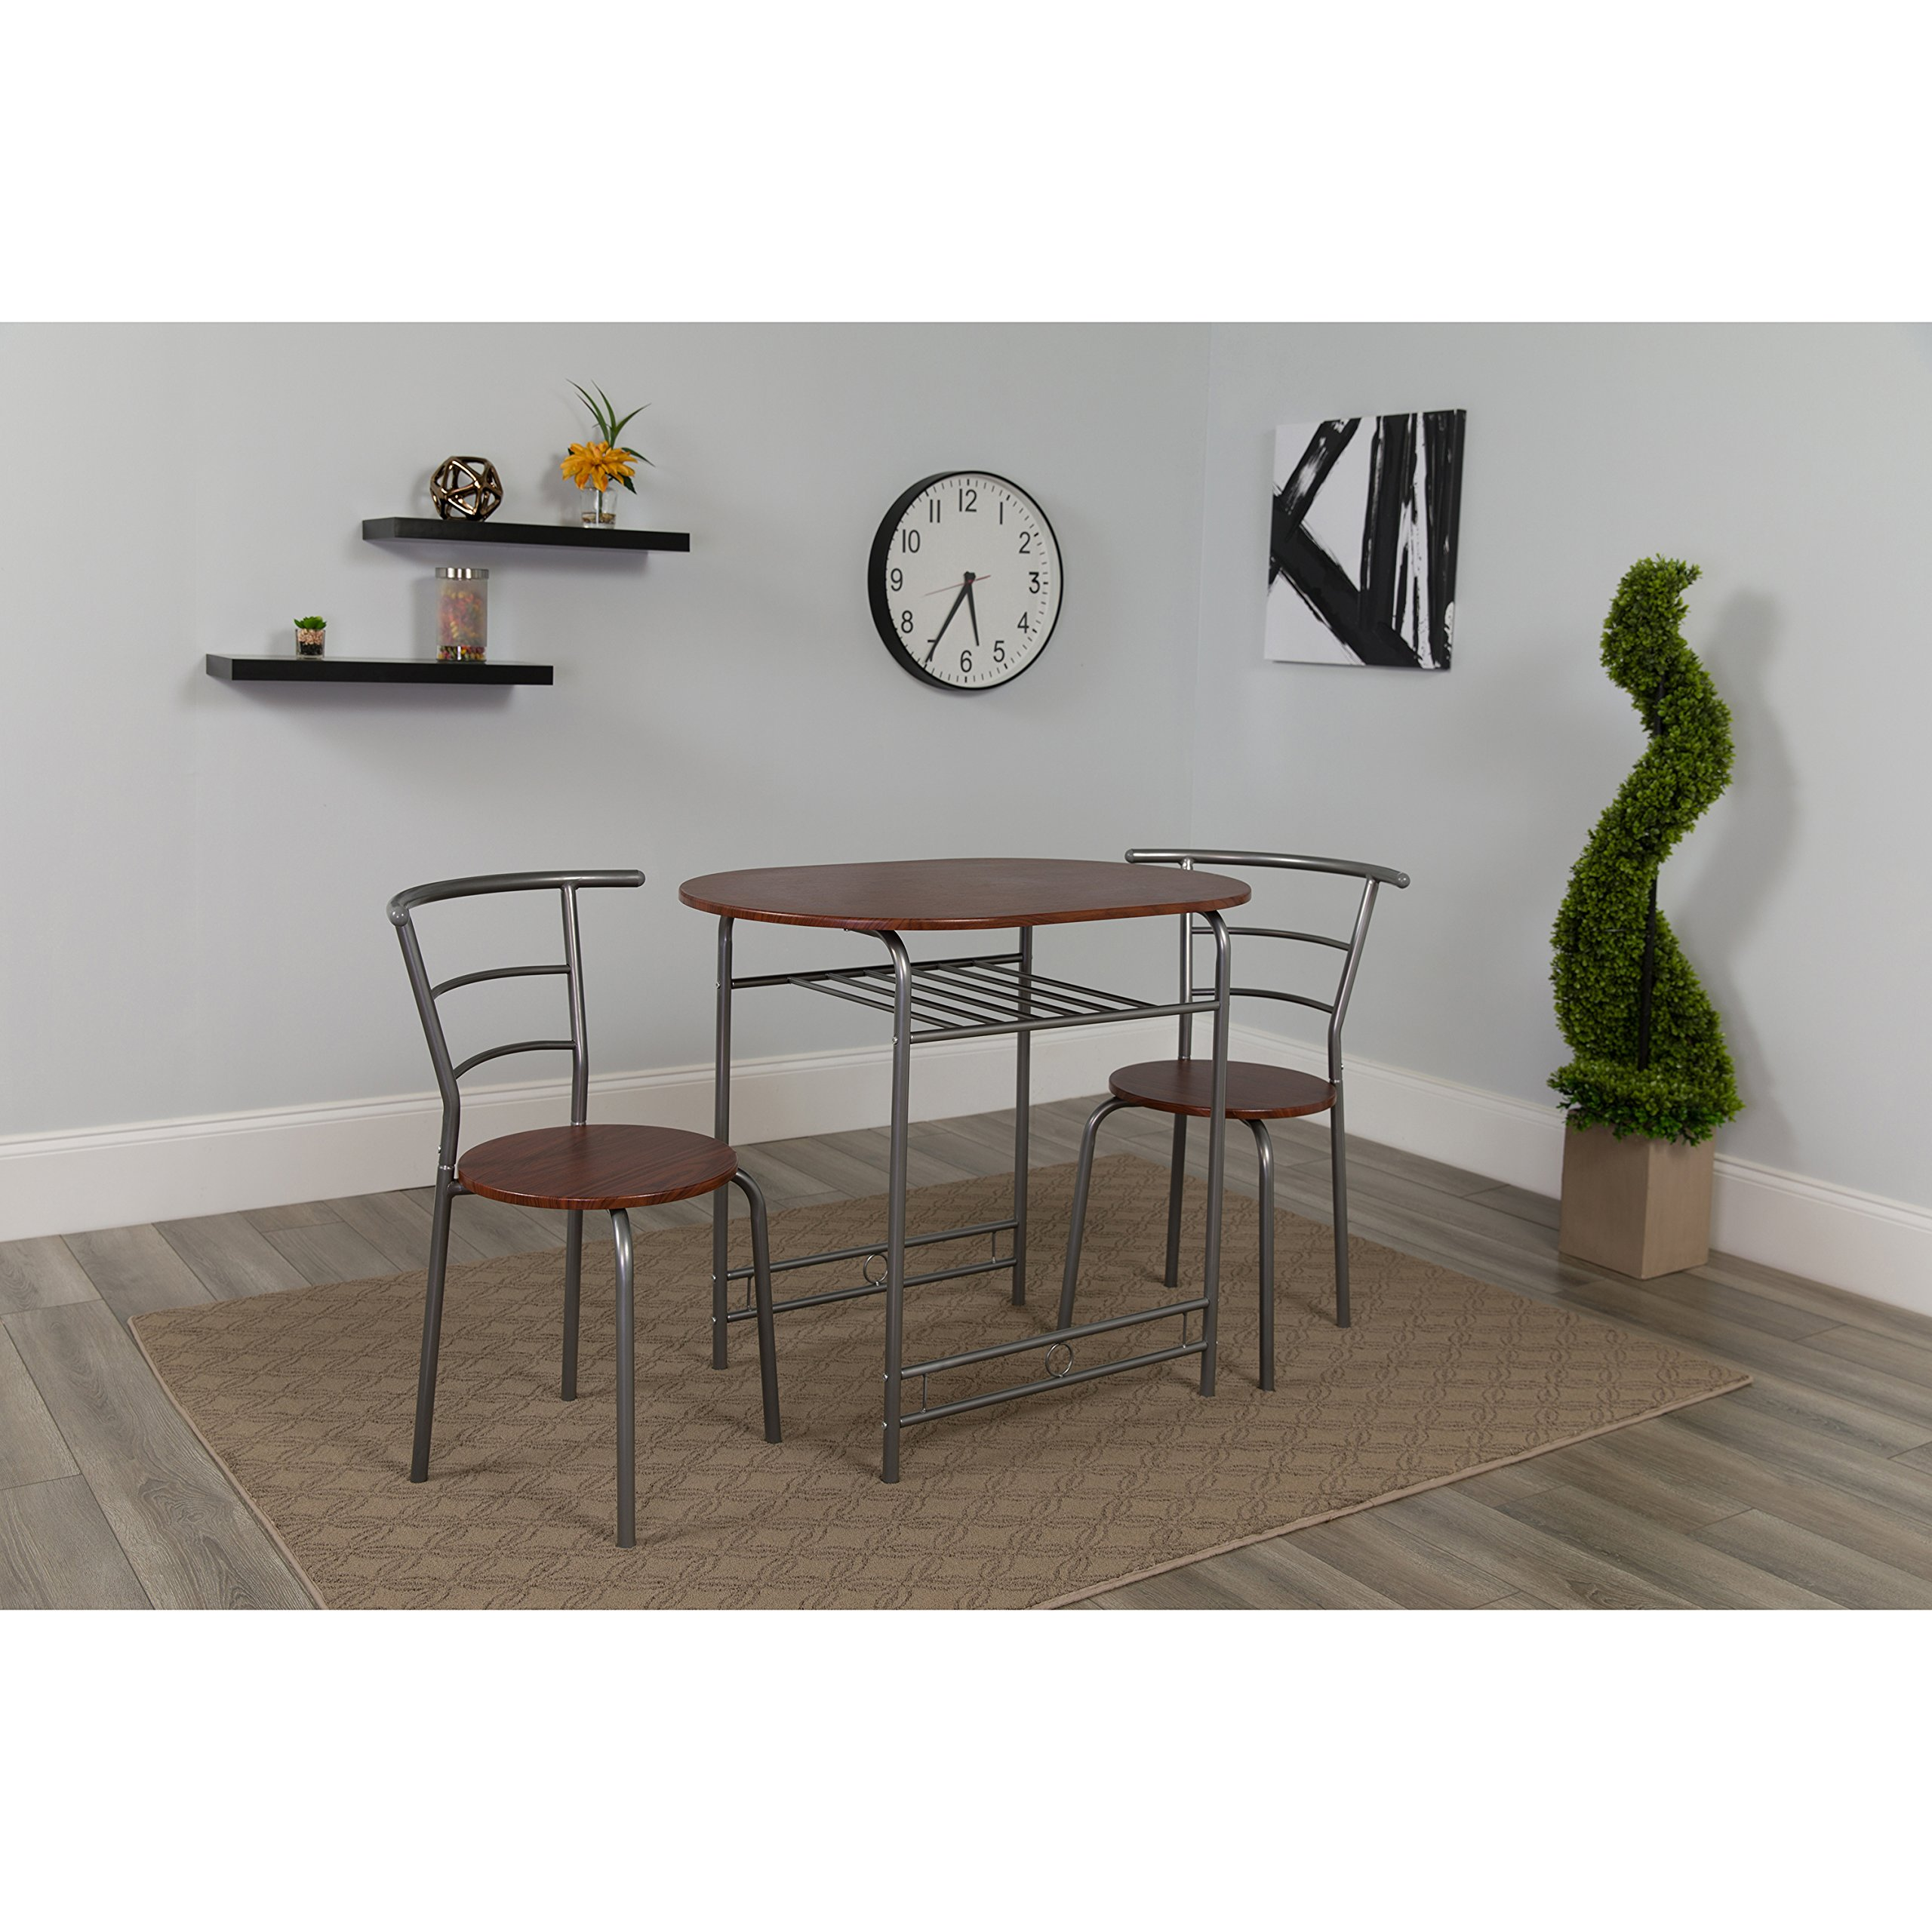 Flash Furniture Soho 3 Piece Space-Saver Mahogany Finish Bistro Table with Shelf and Chairs